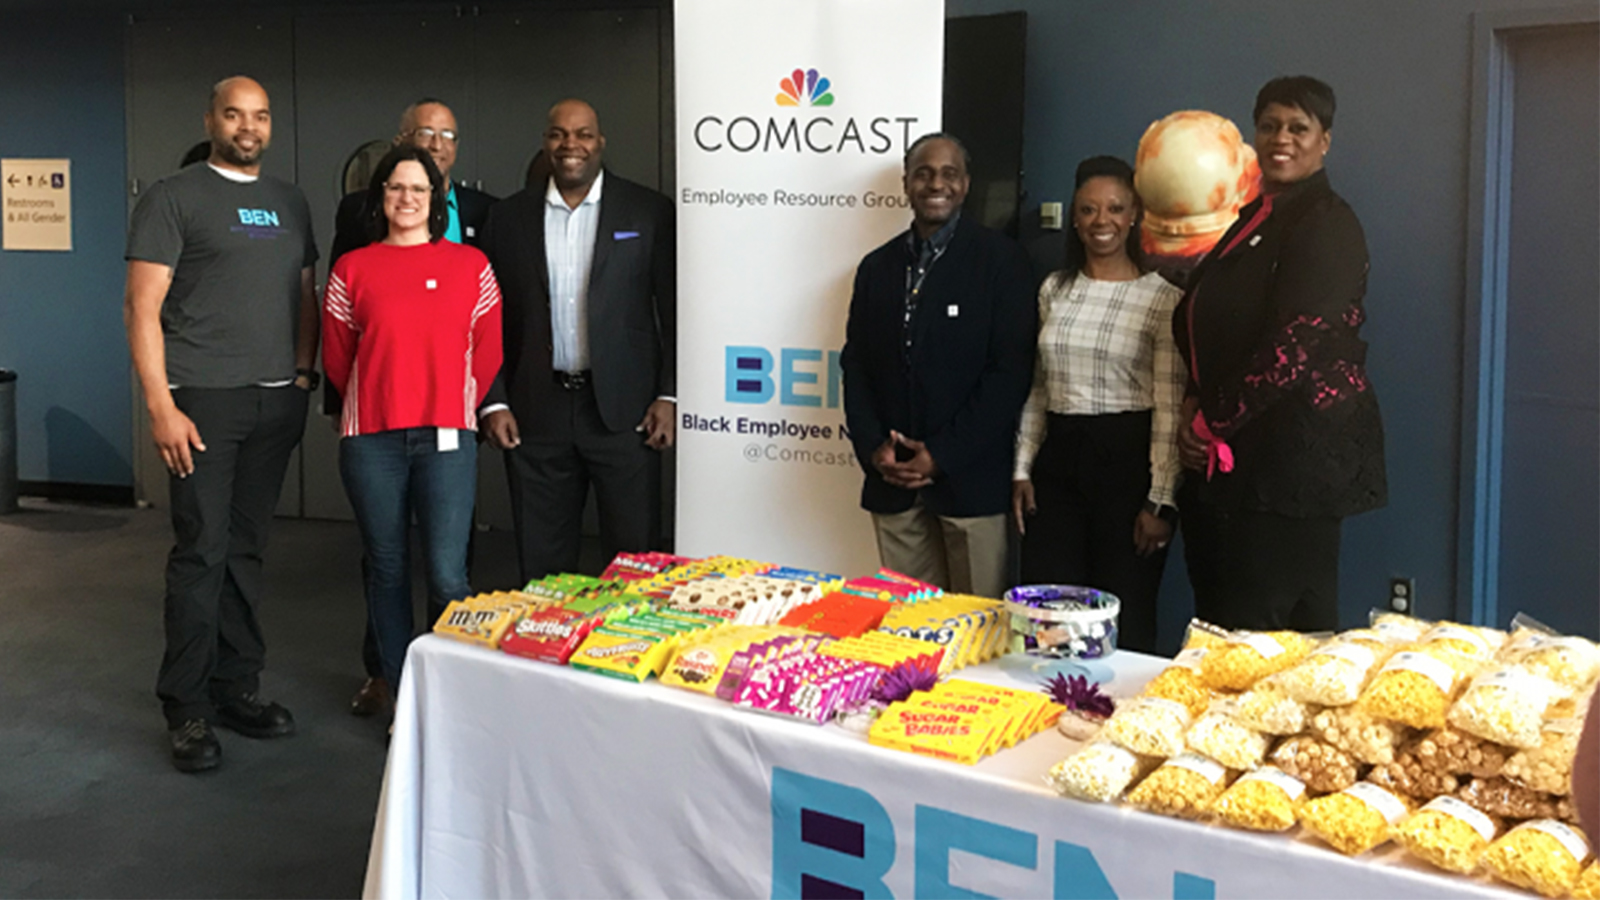 The Comcast Employee Resource Group and the Comcast Black Employee Network standing in-front of a Comcast branded banner.